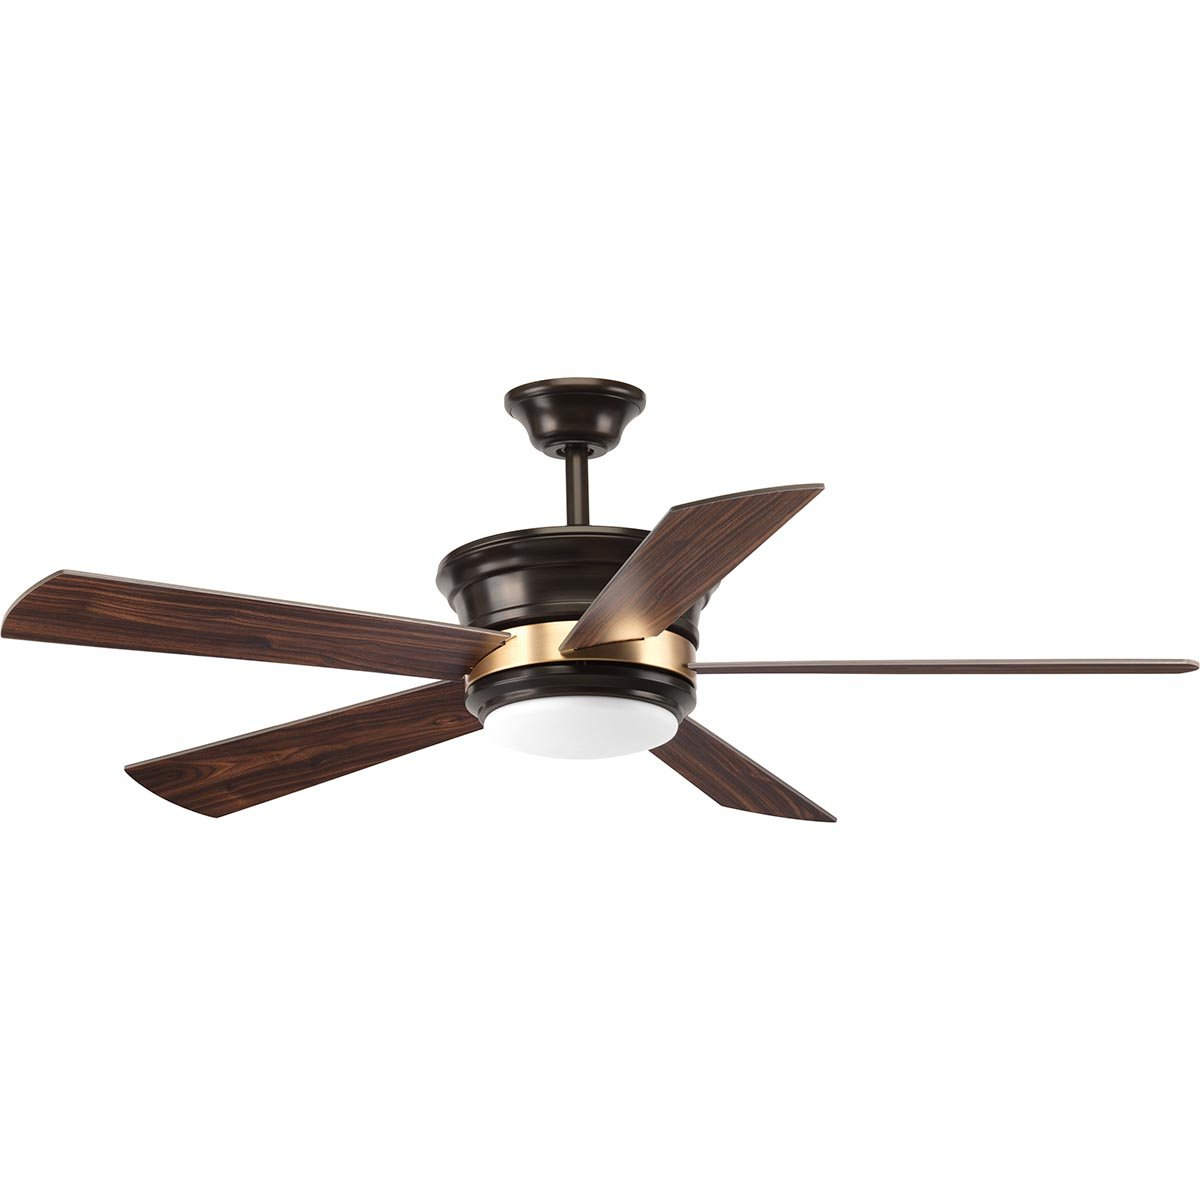 "Red Barrel Studio 54"" Seaton 5 Blade Led Ceiling Fan With Remote Regarding Preferred Bernabe 3 Blade Ceiling Fans (View 18 of 20)"